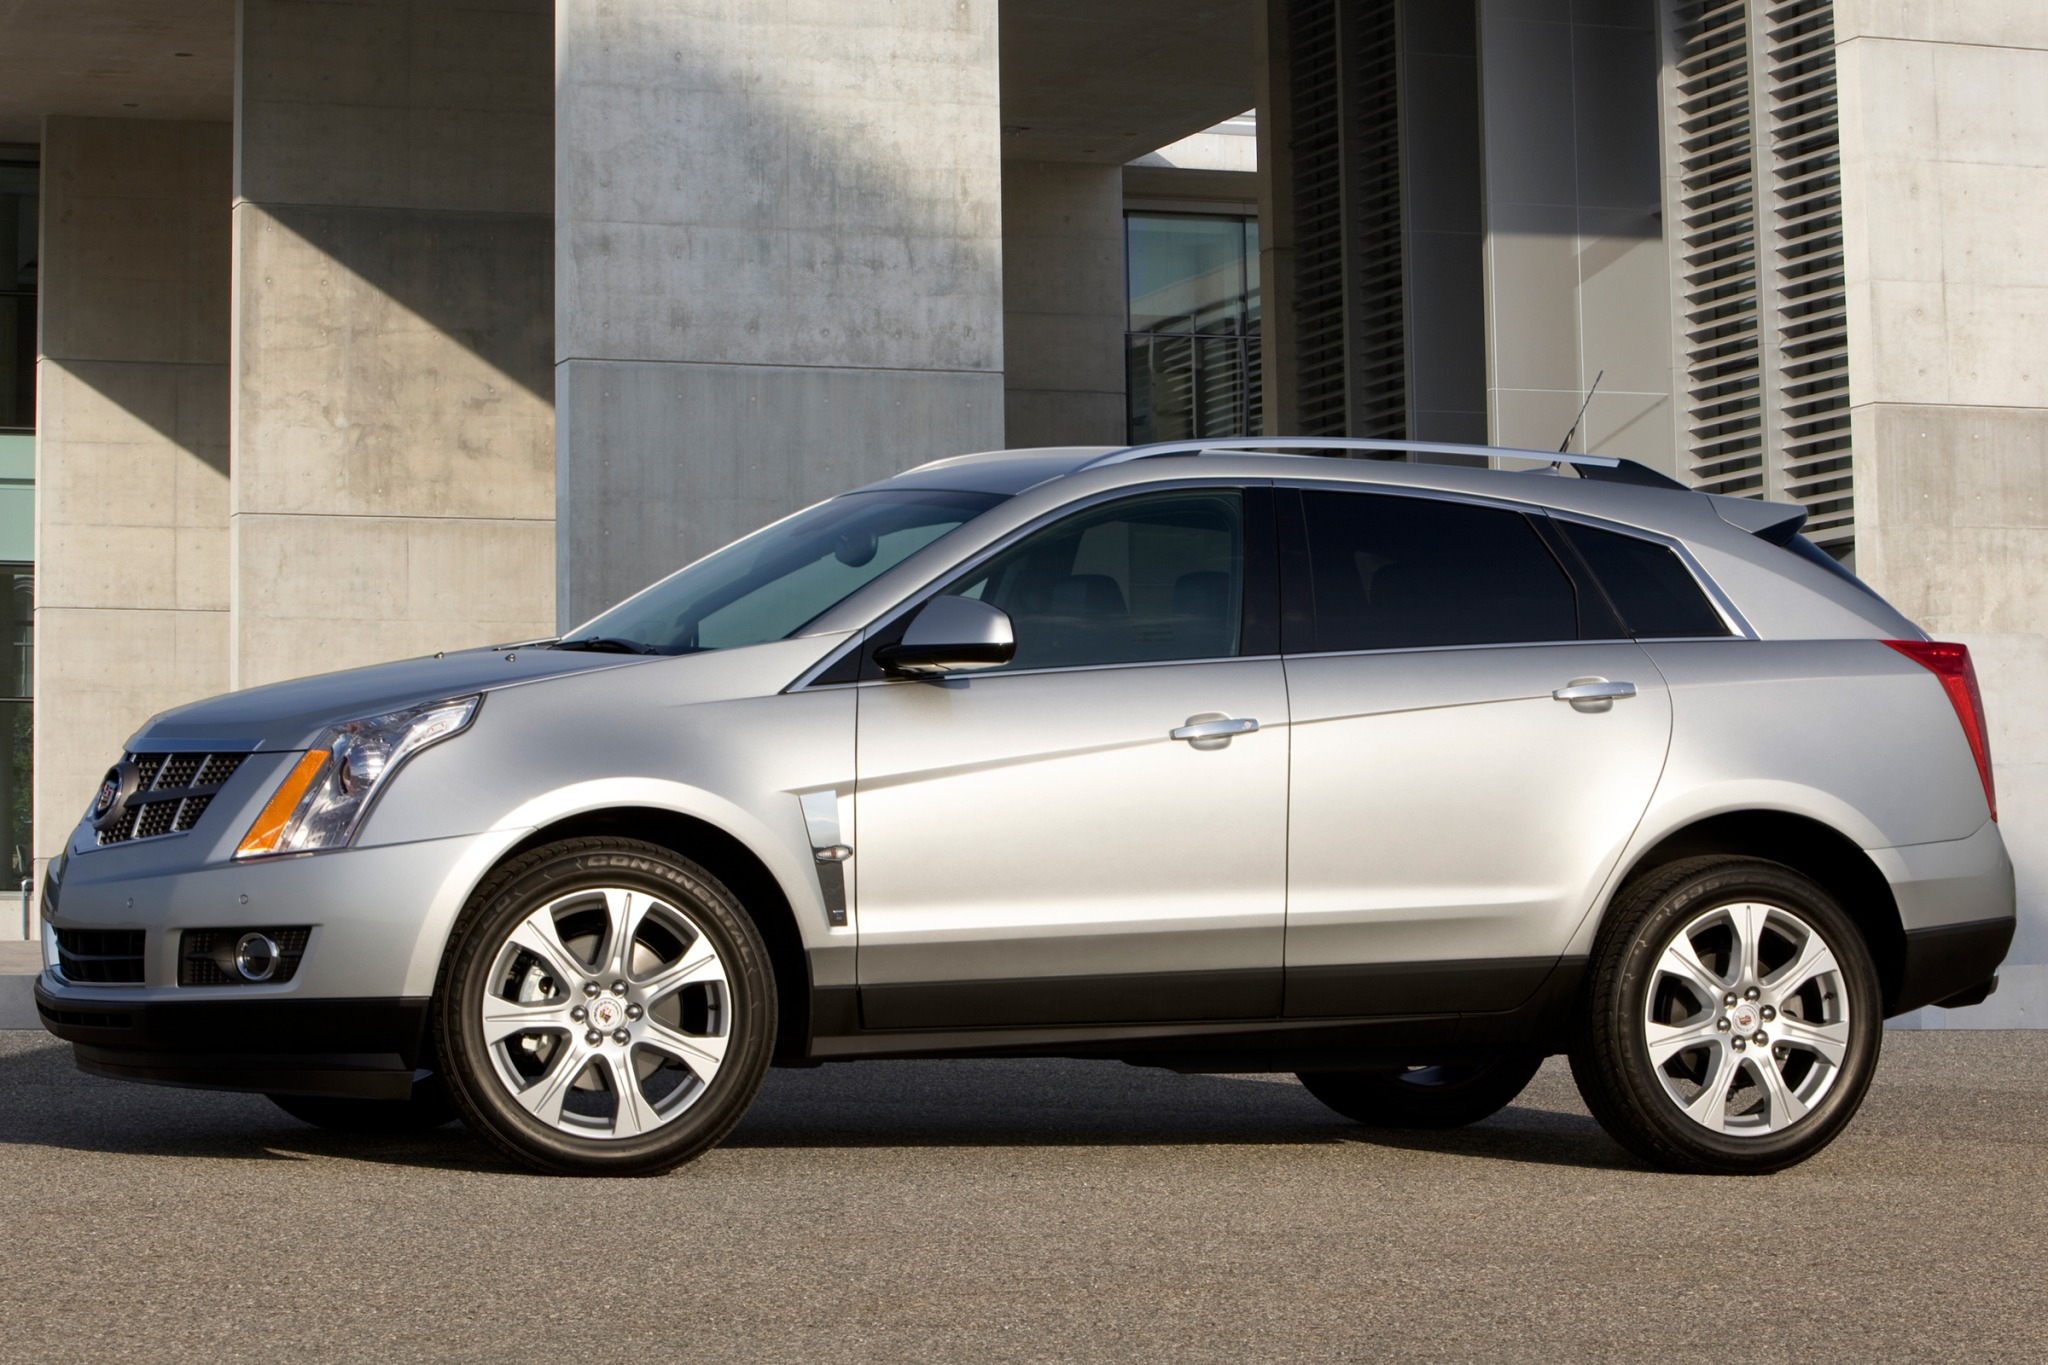 2010 Cadillac Srx Awd Turbo Performance Collection Vin